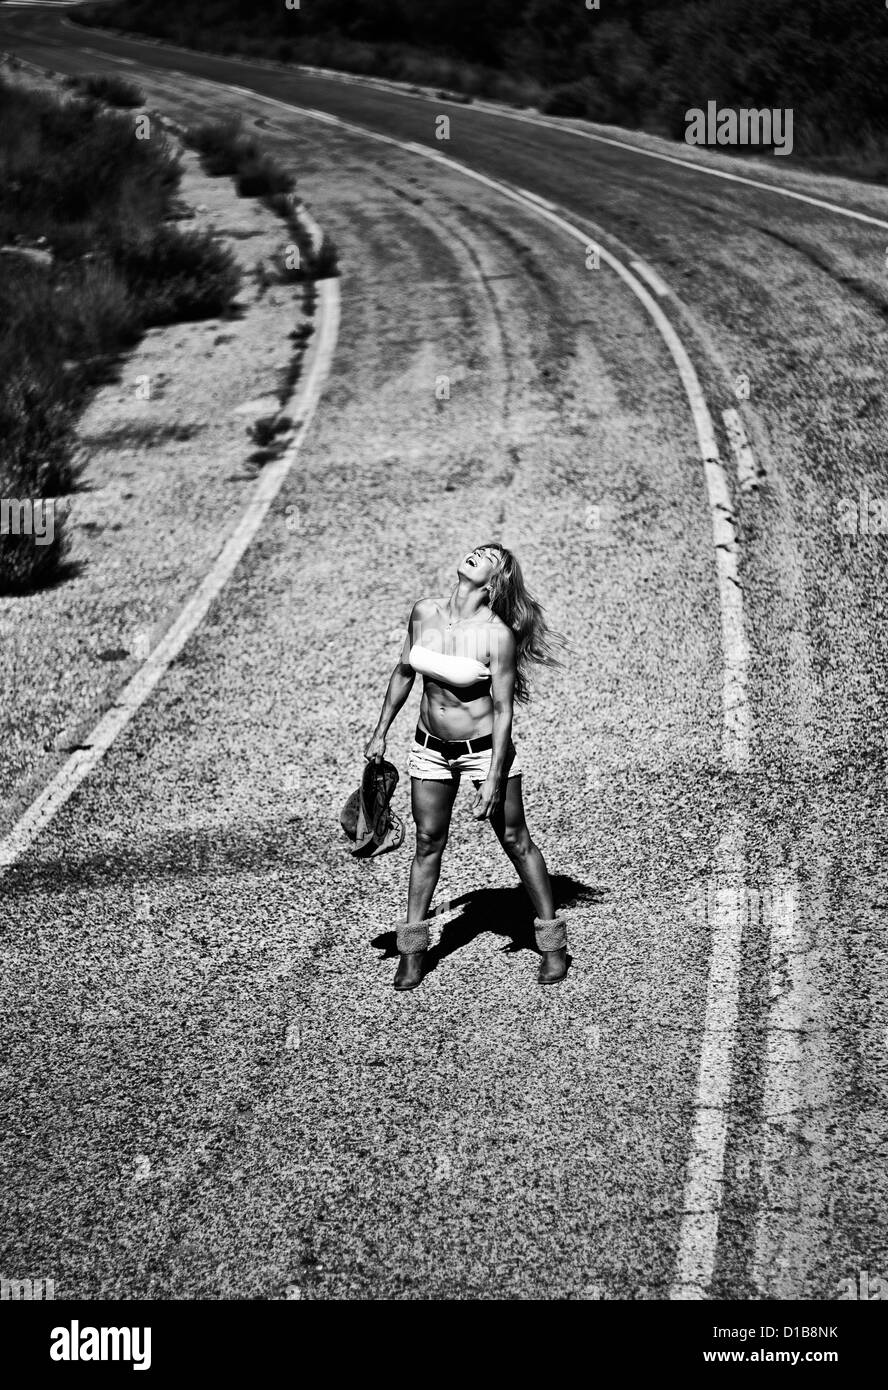 Woman alone on road. - Stock Image